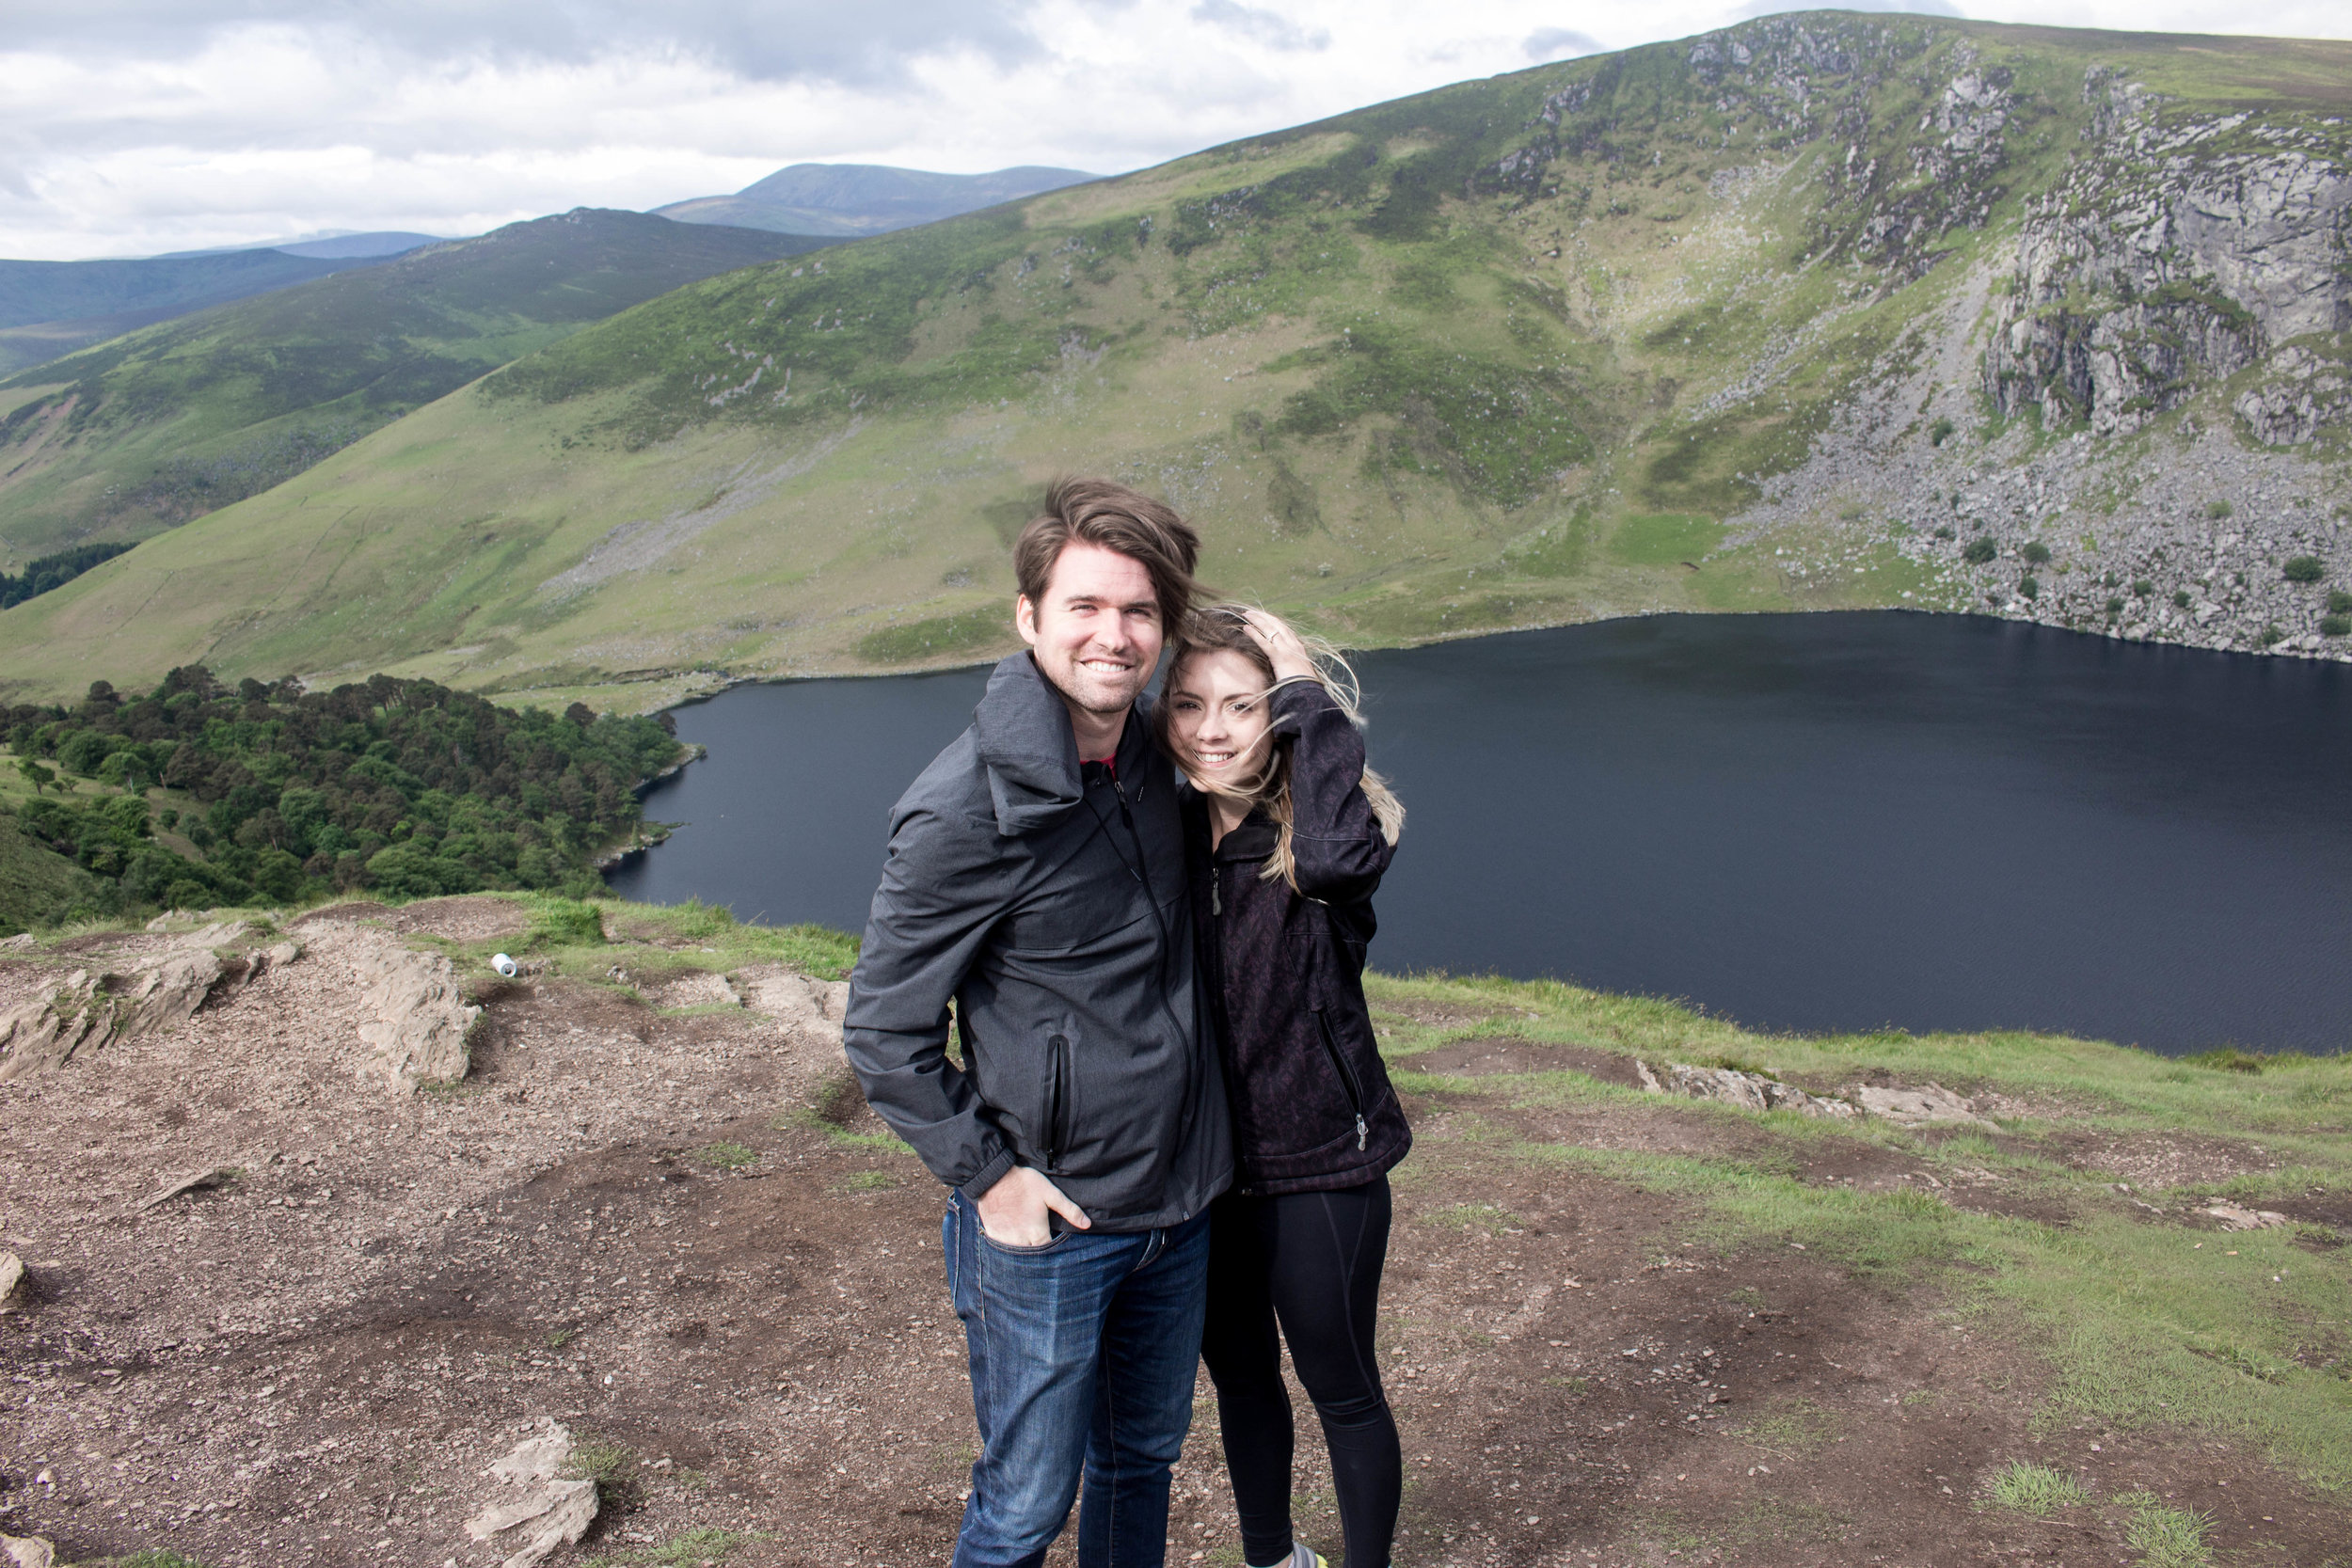 Wicklow Mountains - Things to do in Ireland - Sarah of True North Paper Co.